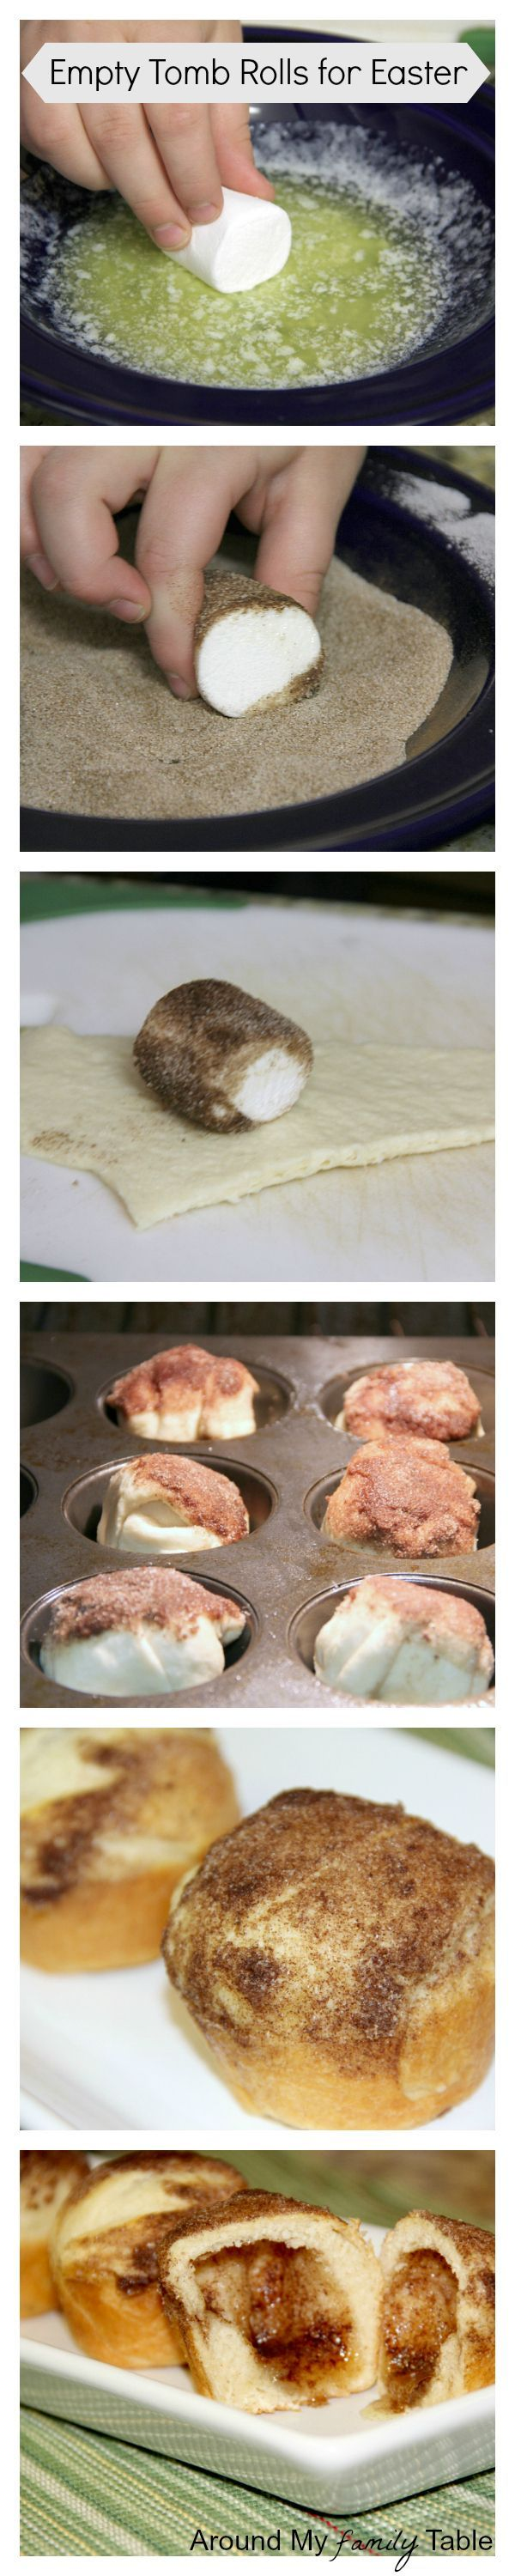 OMG Ive found them! A friends mom used to make these and Ive been dying for the recipe! Great as a light desert, fluffy and gooey, sweet and buttery, all at the same time